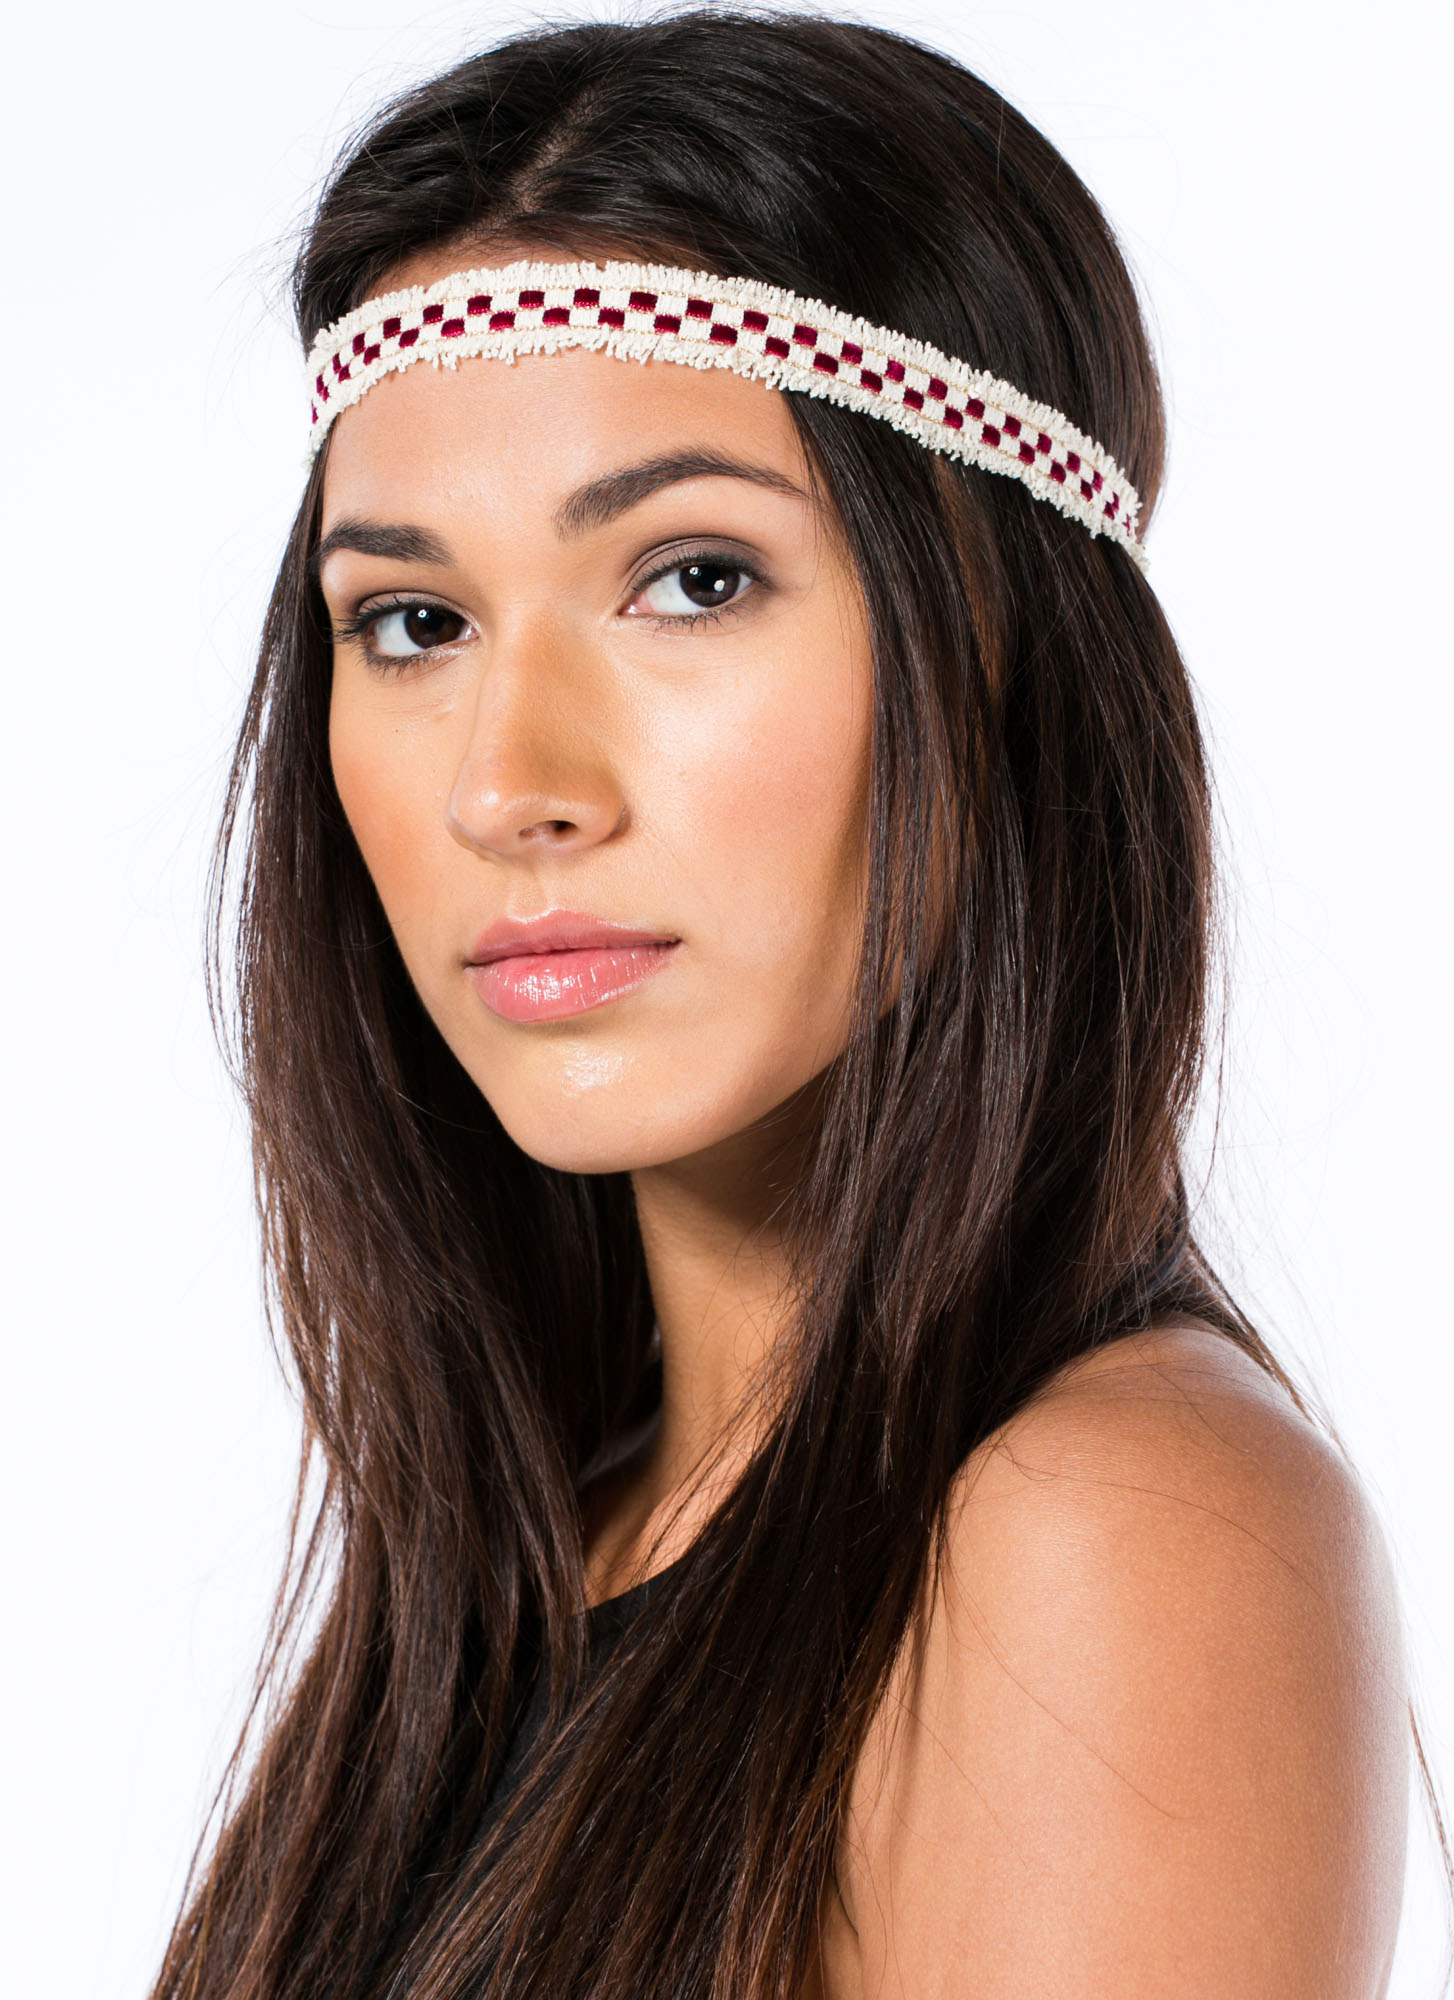 Woven Checkered Fringed Headband REDIVORY